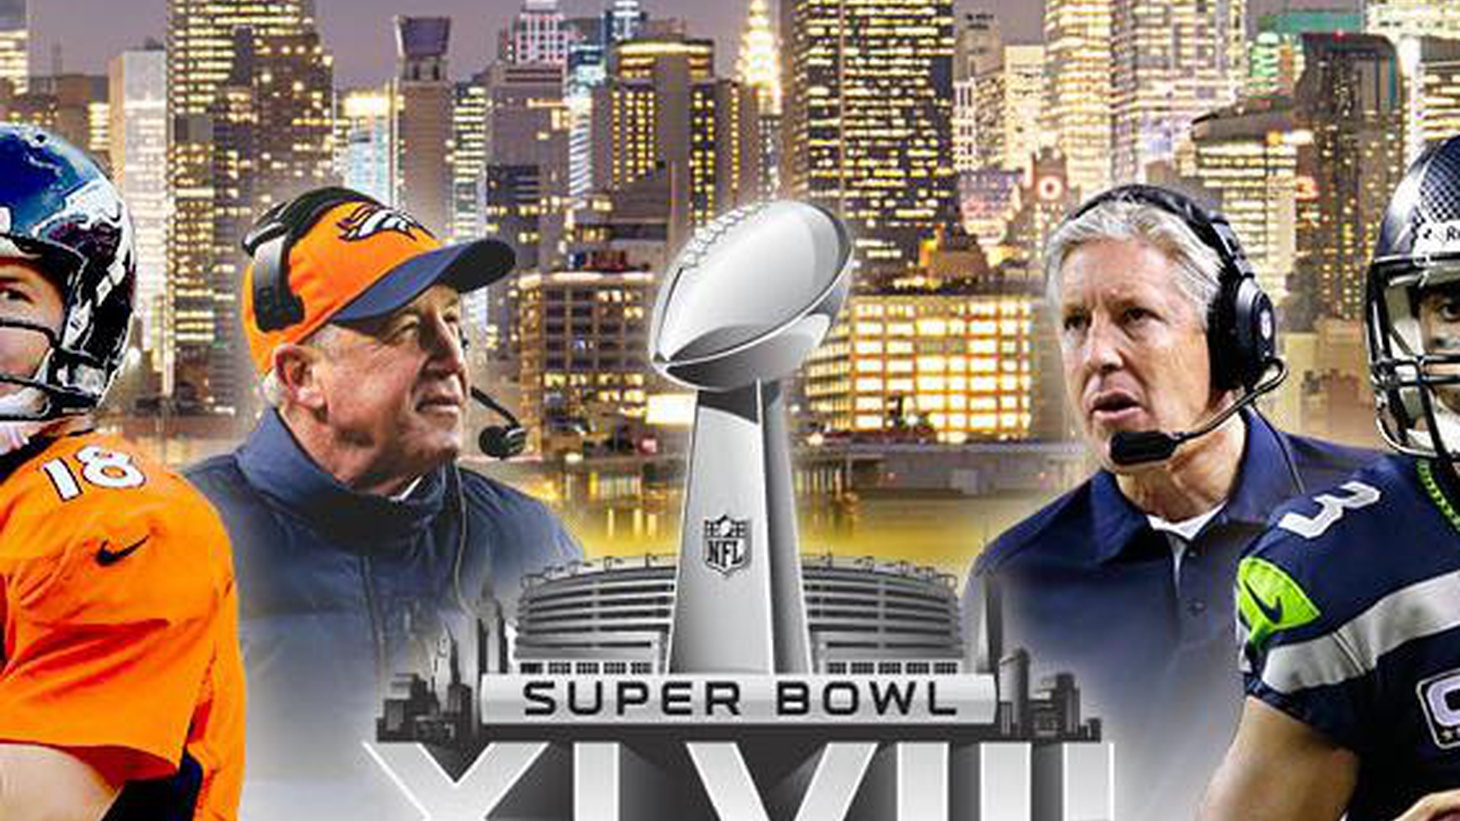 """Will Sunday's Super Bowl be worth what it costs NJ taxpayers? Are subsidies for stadiums, operating costs and """"inducement payments"""" enriching owners at public expense?"""